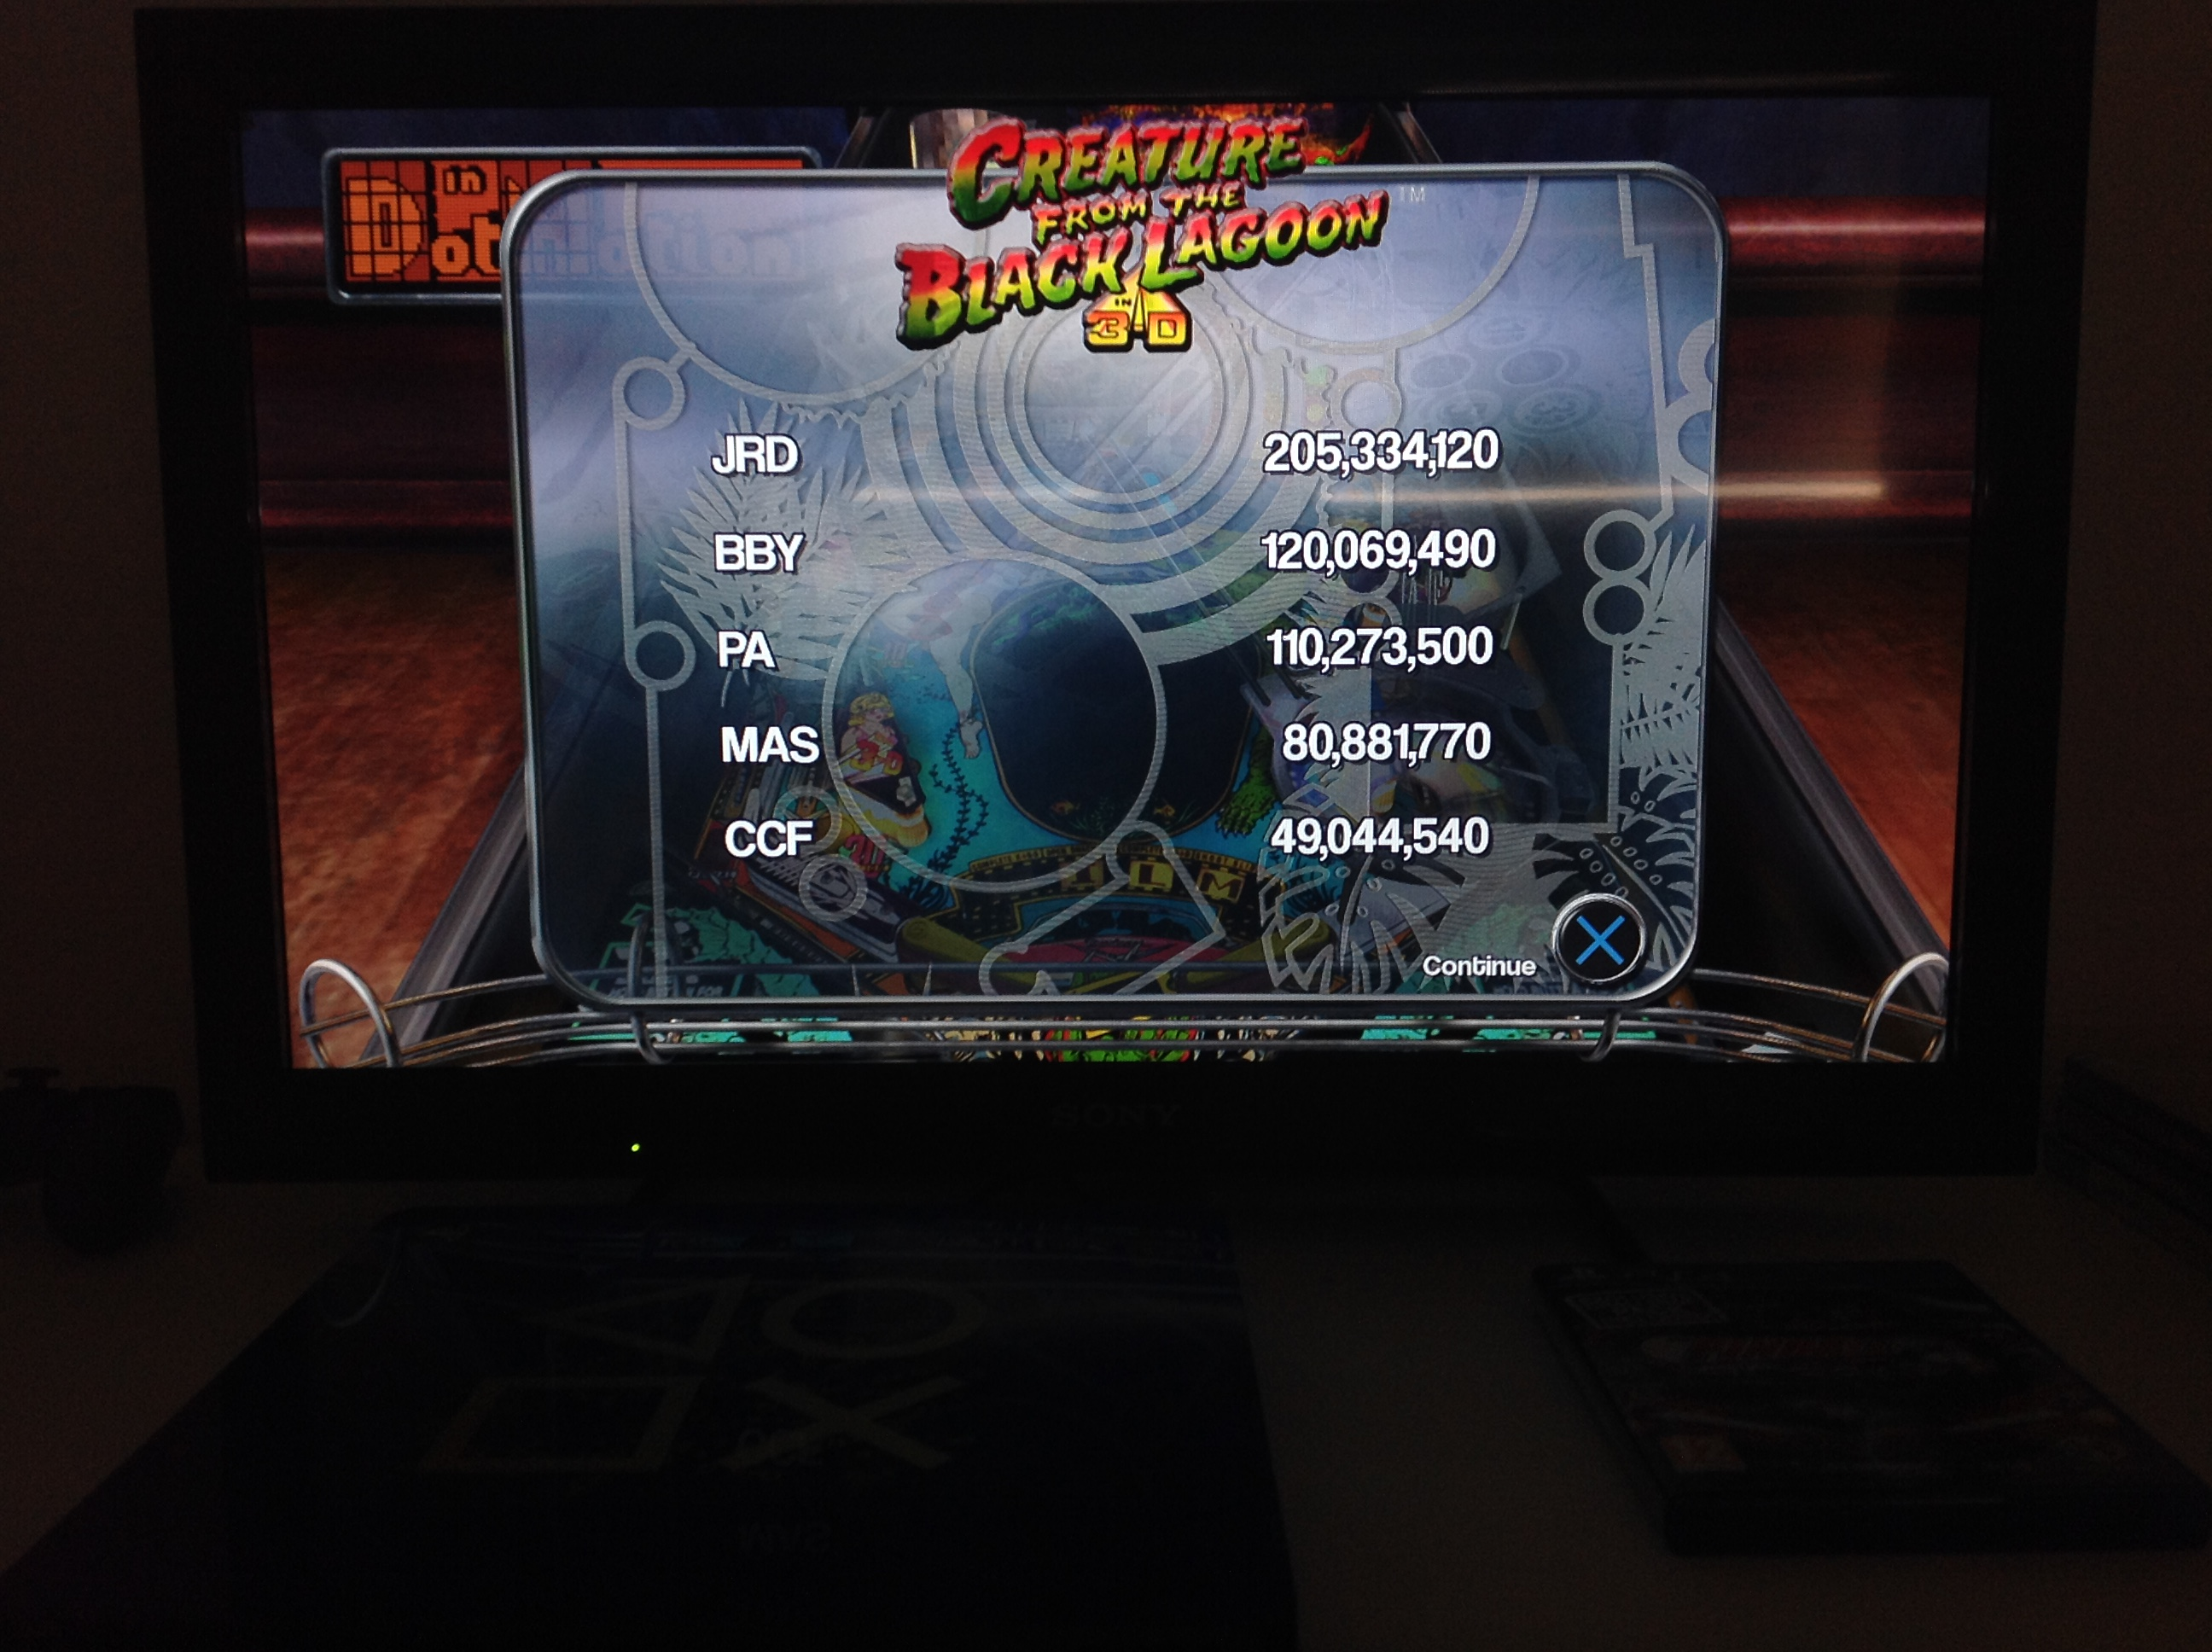 CoCoForest: Pinball Arcade: Creature From the Black Lagoon (Playstation 4) 49,044,540 points on 2018-07-05 13:26:38